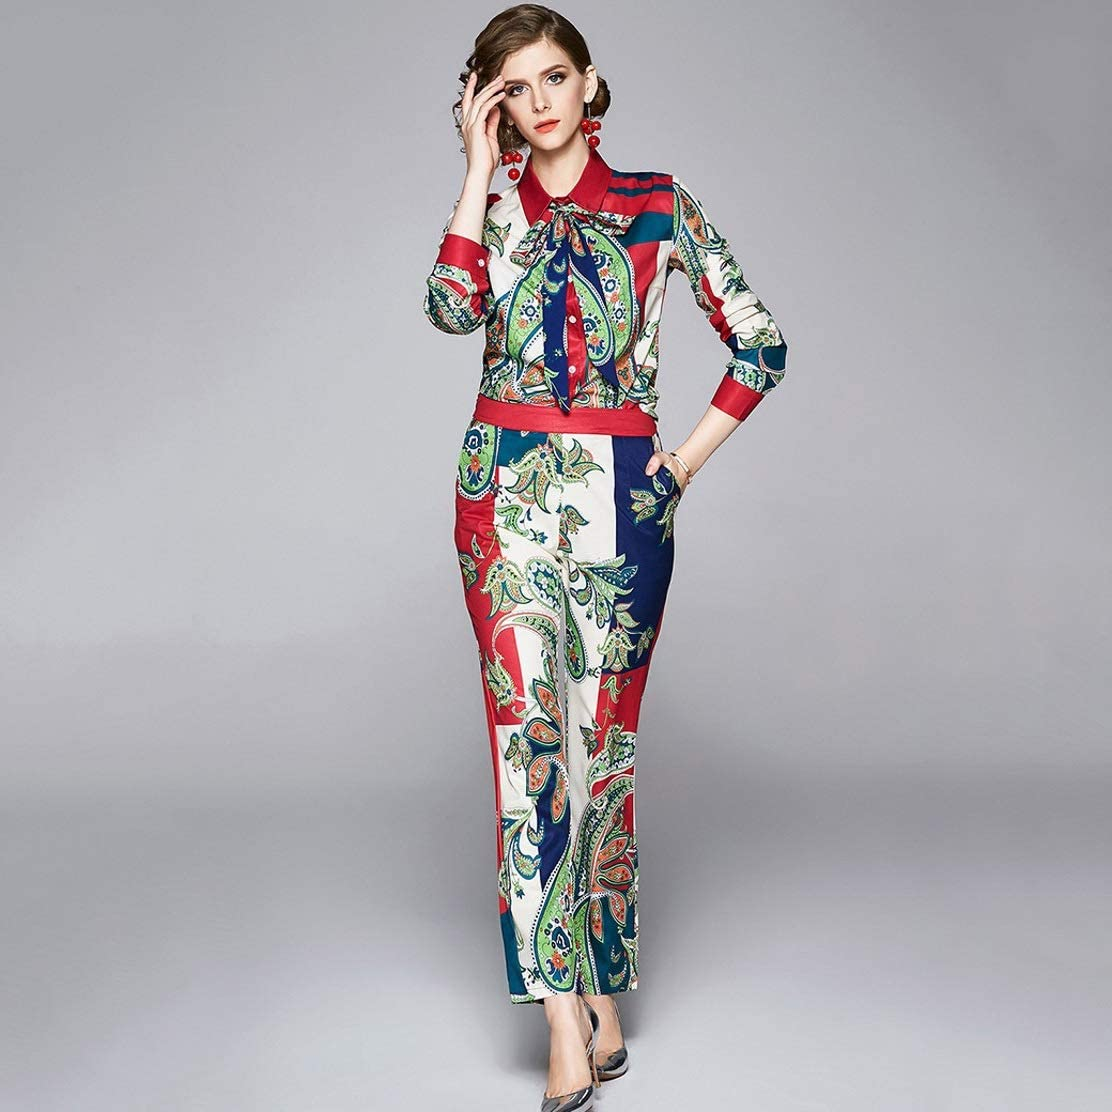 SGZYJ 2020 Spring Fashion Pant Set Suits Women's Turn-Down Collar Bow Tie Shirt Top+ Floral Printed Trousers Suit 2 Pieces Sets (Size : XX-Large)